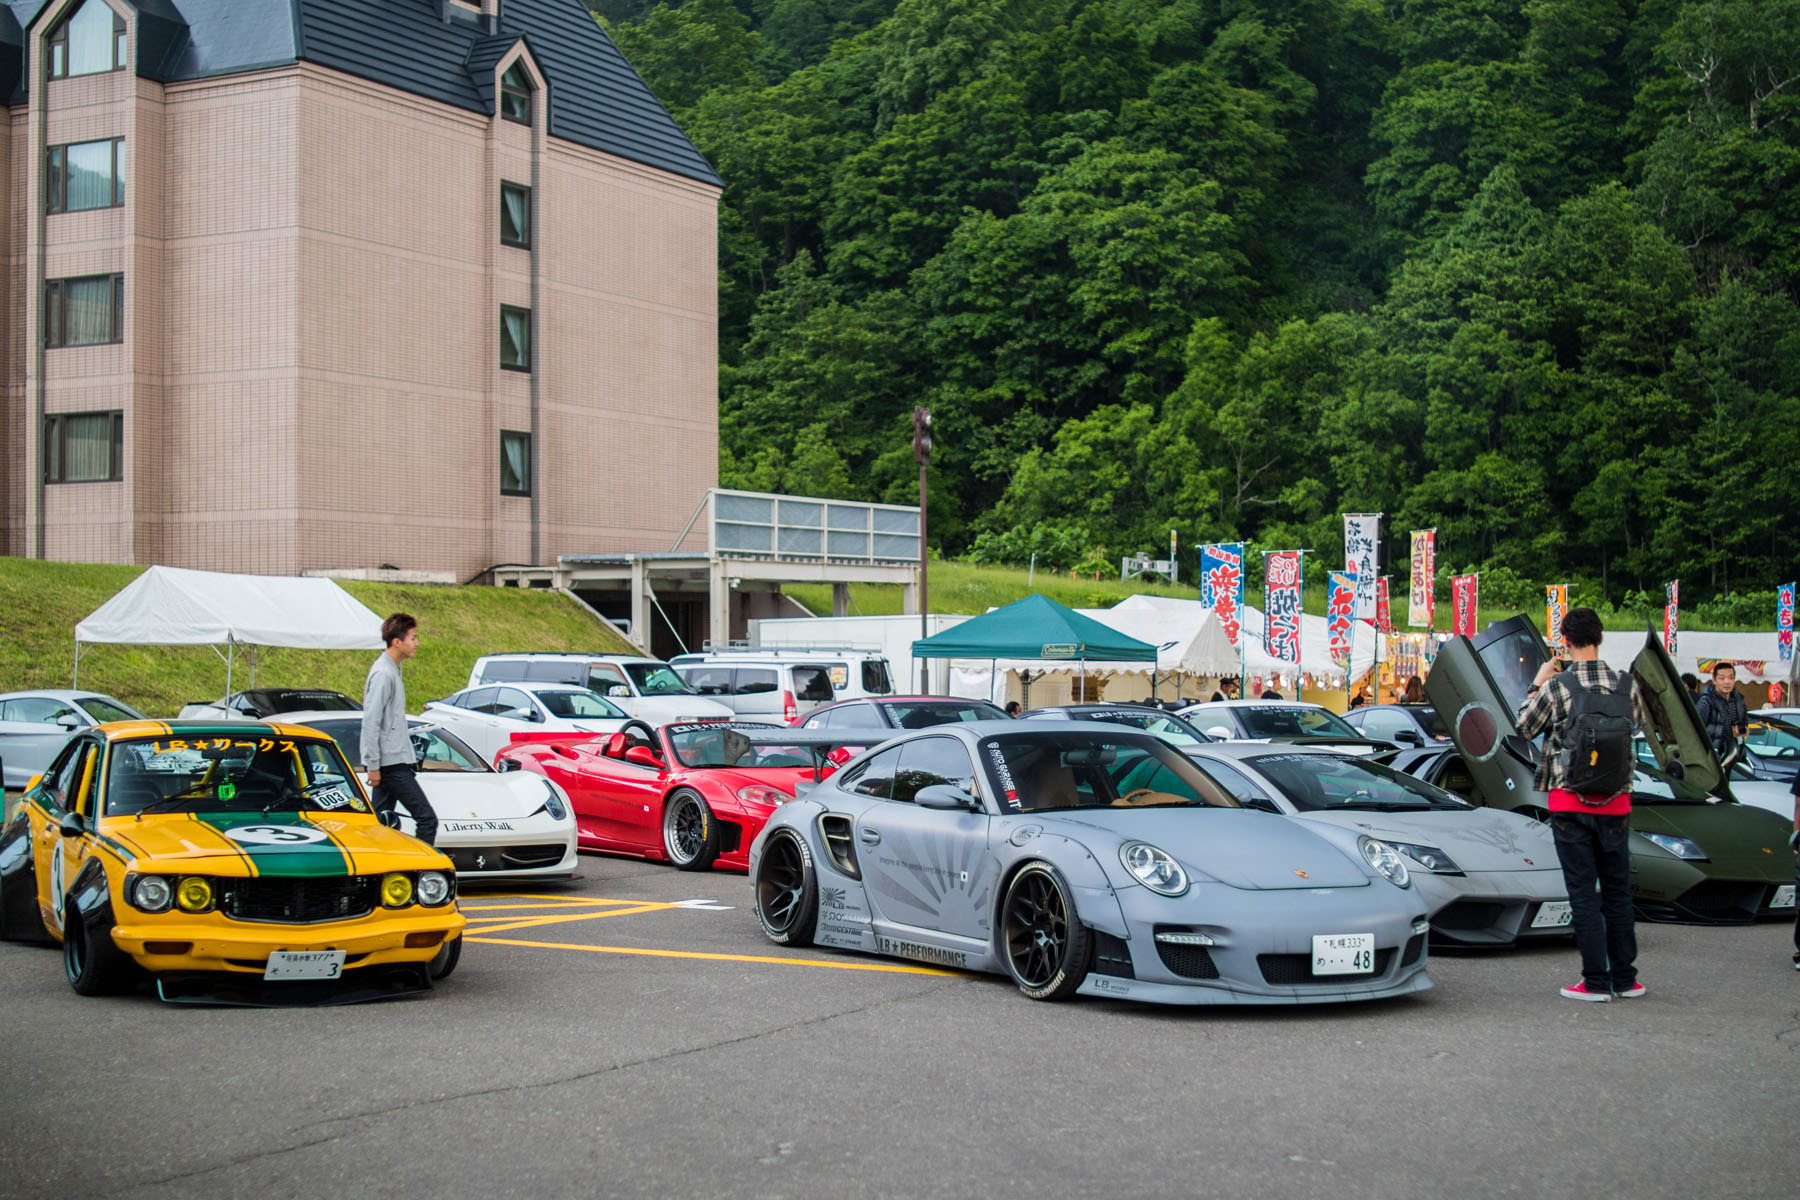 588f5dc5c85286438783f2302a488dbe-2 North Japan Custom Festival 2017